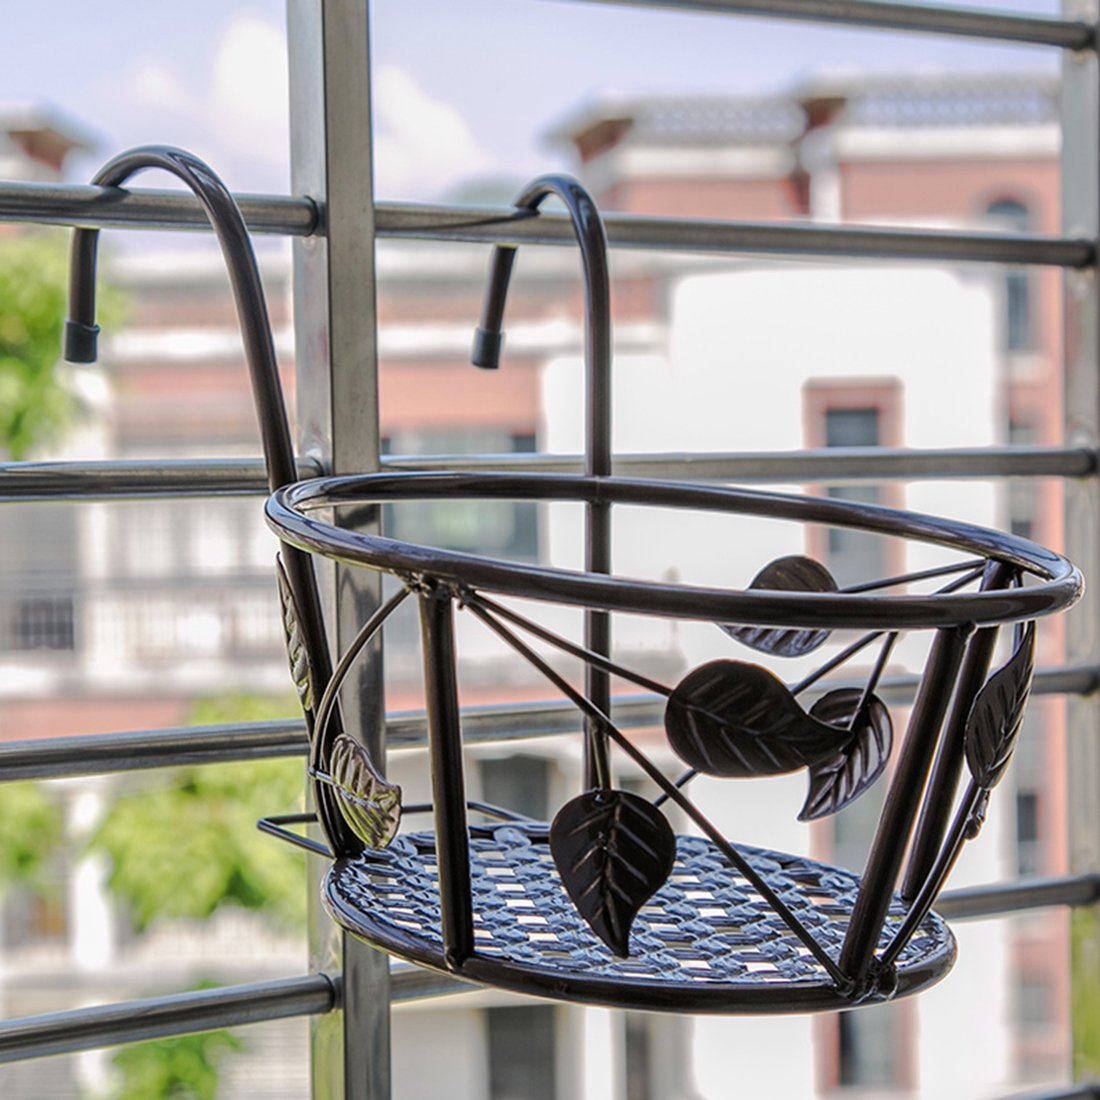 Tosnail 3 Pack Iron Art Hanging Baskets Flower Pot Holder - Great Patio Balcony Porch Fence - Brown by Tosnail (Image #3)